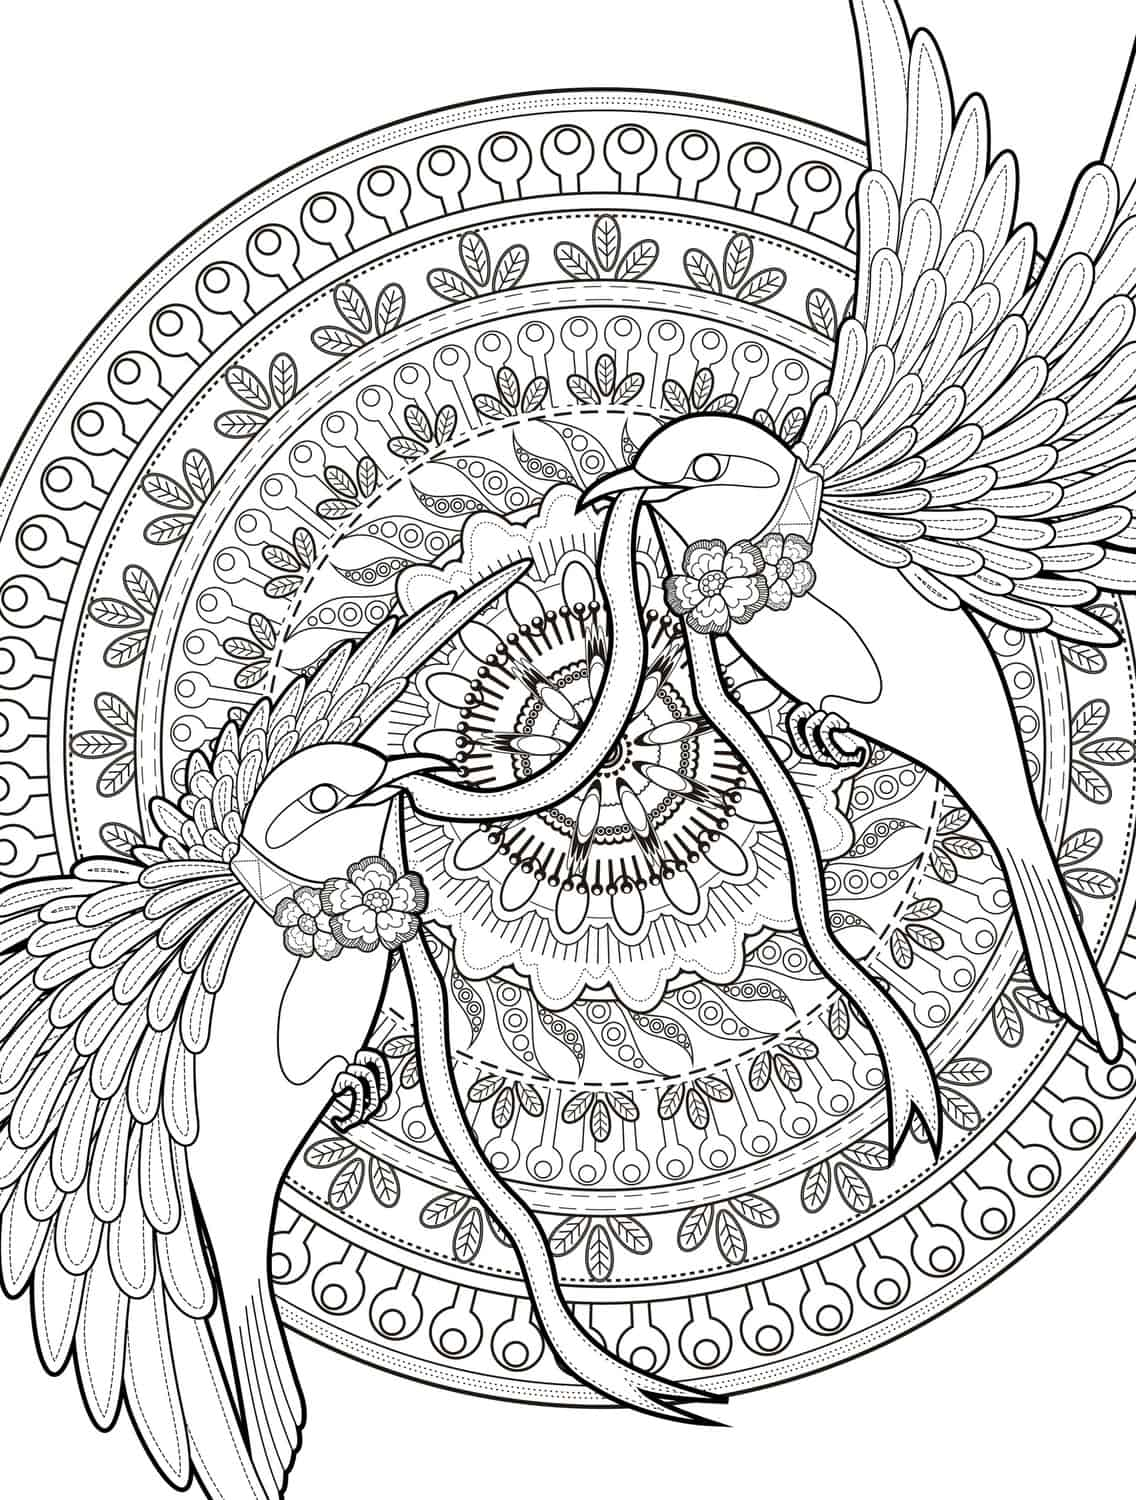 adult coloring pages with birds free downloadable web - Downloadable Coloring Pages